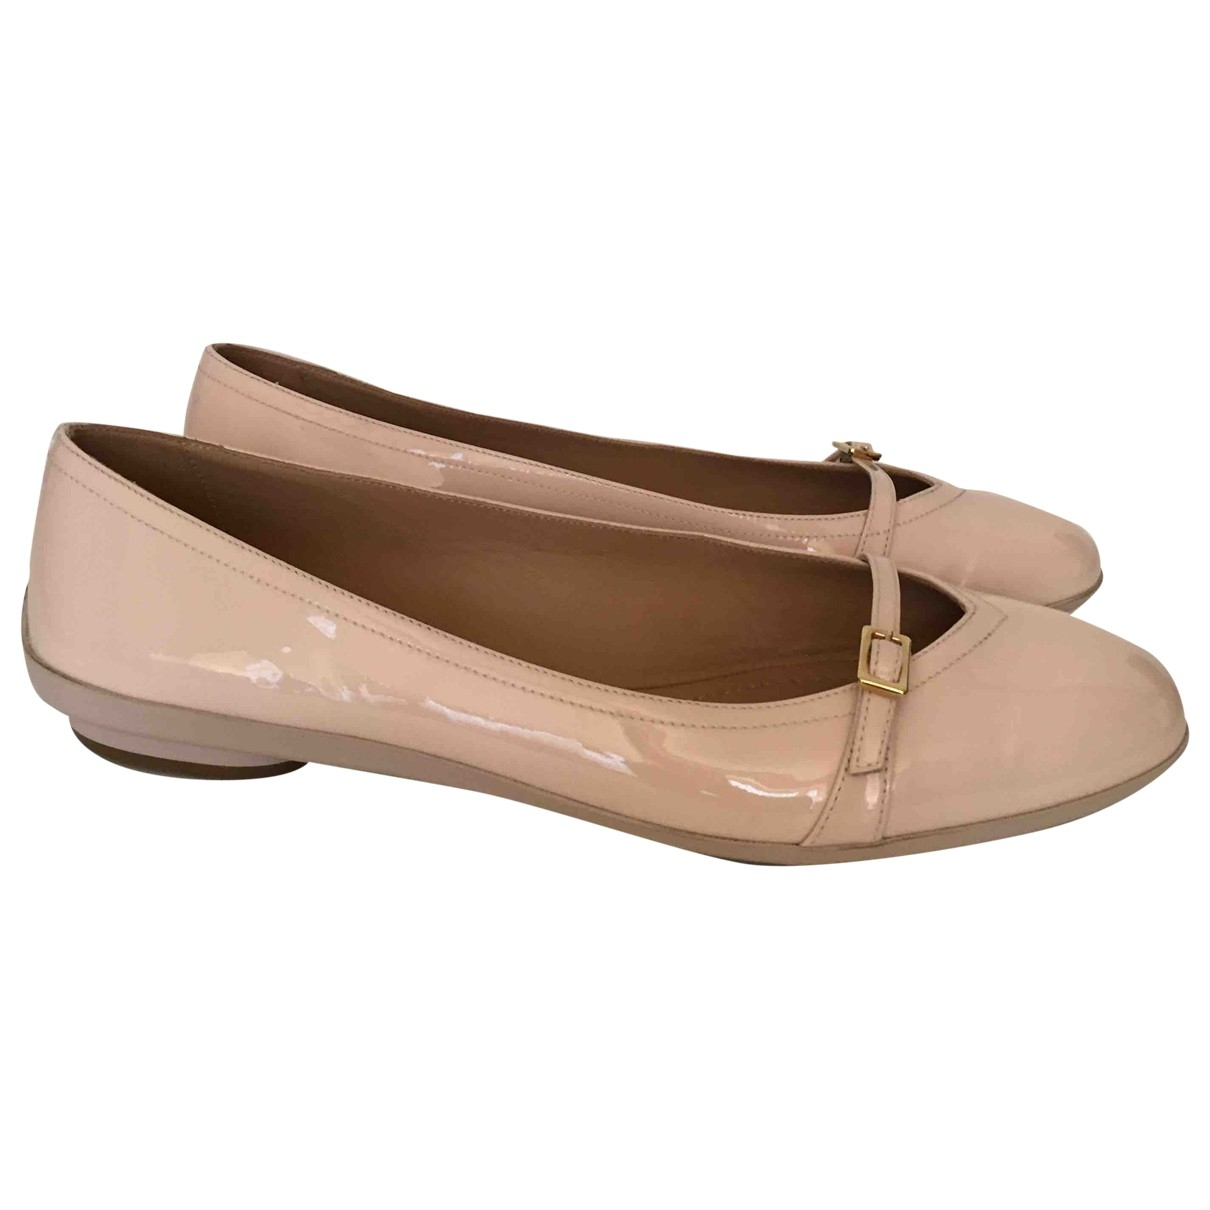 Salvatore Ferragamo \N Ballerinas in  Rosa Lackleder